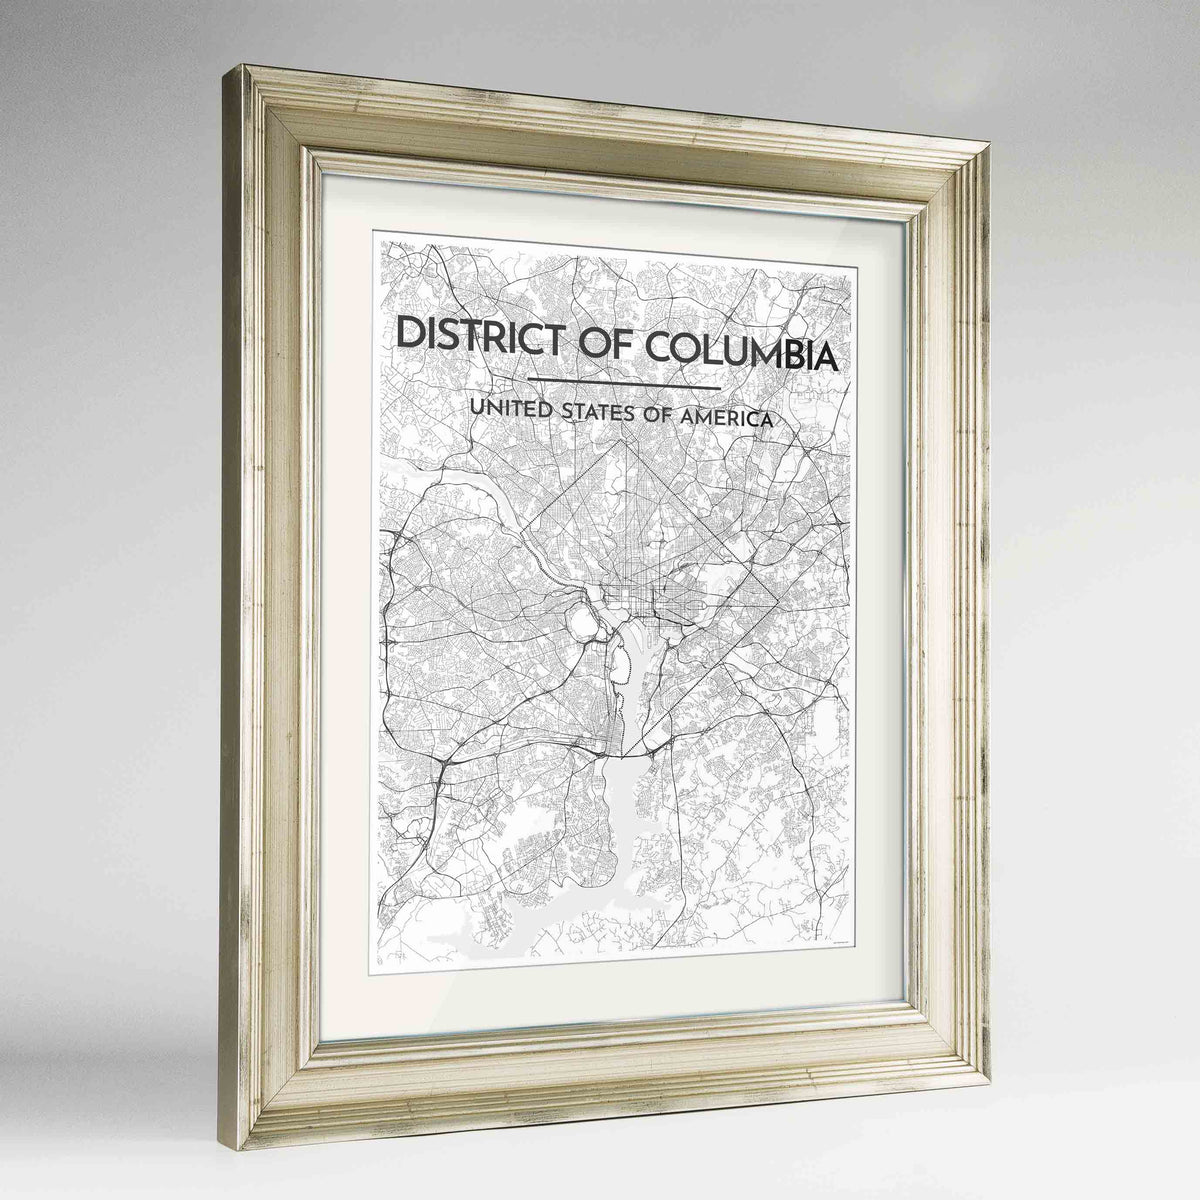 "Framed District of Columbia Map Art Print 24x36"" Champagne frame Point Two Design Group"